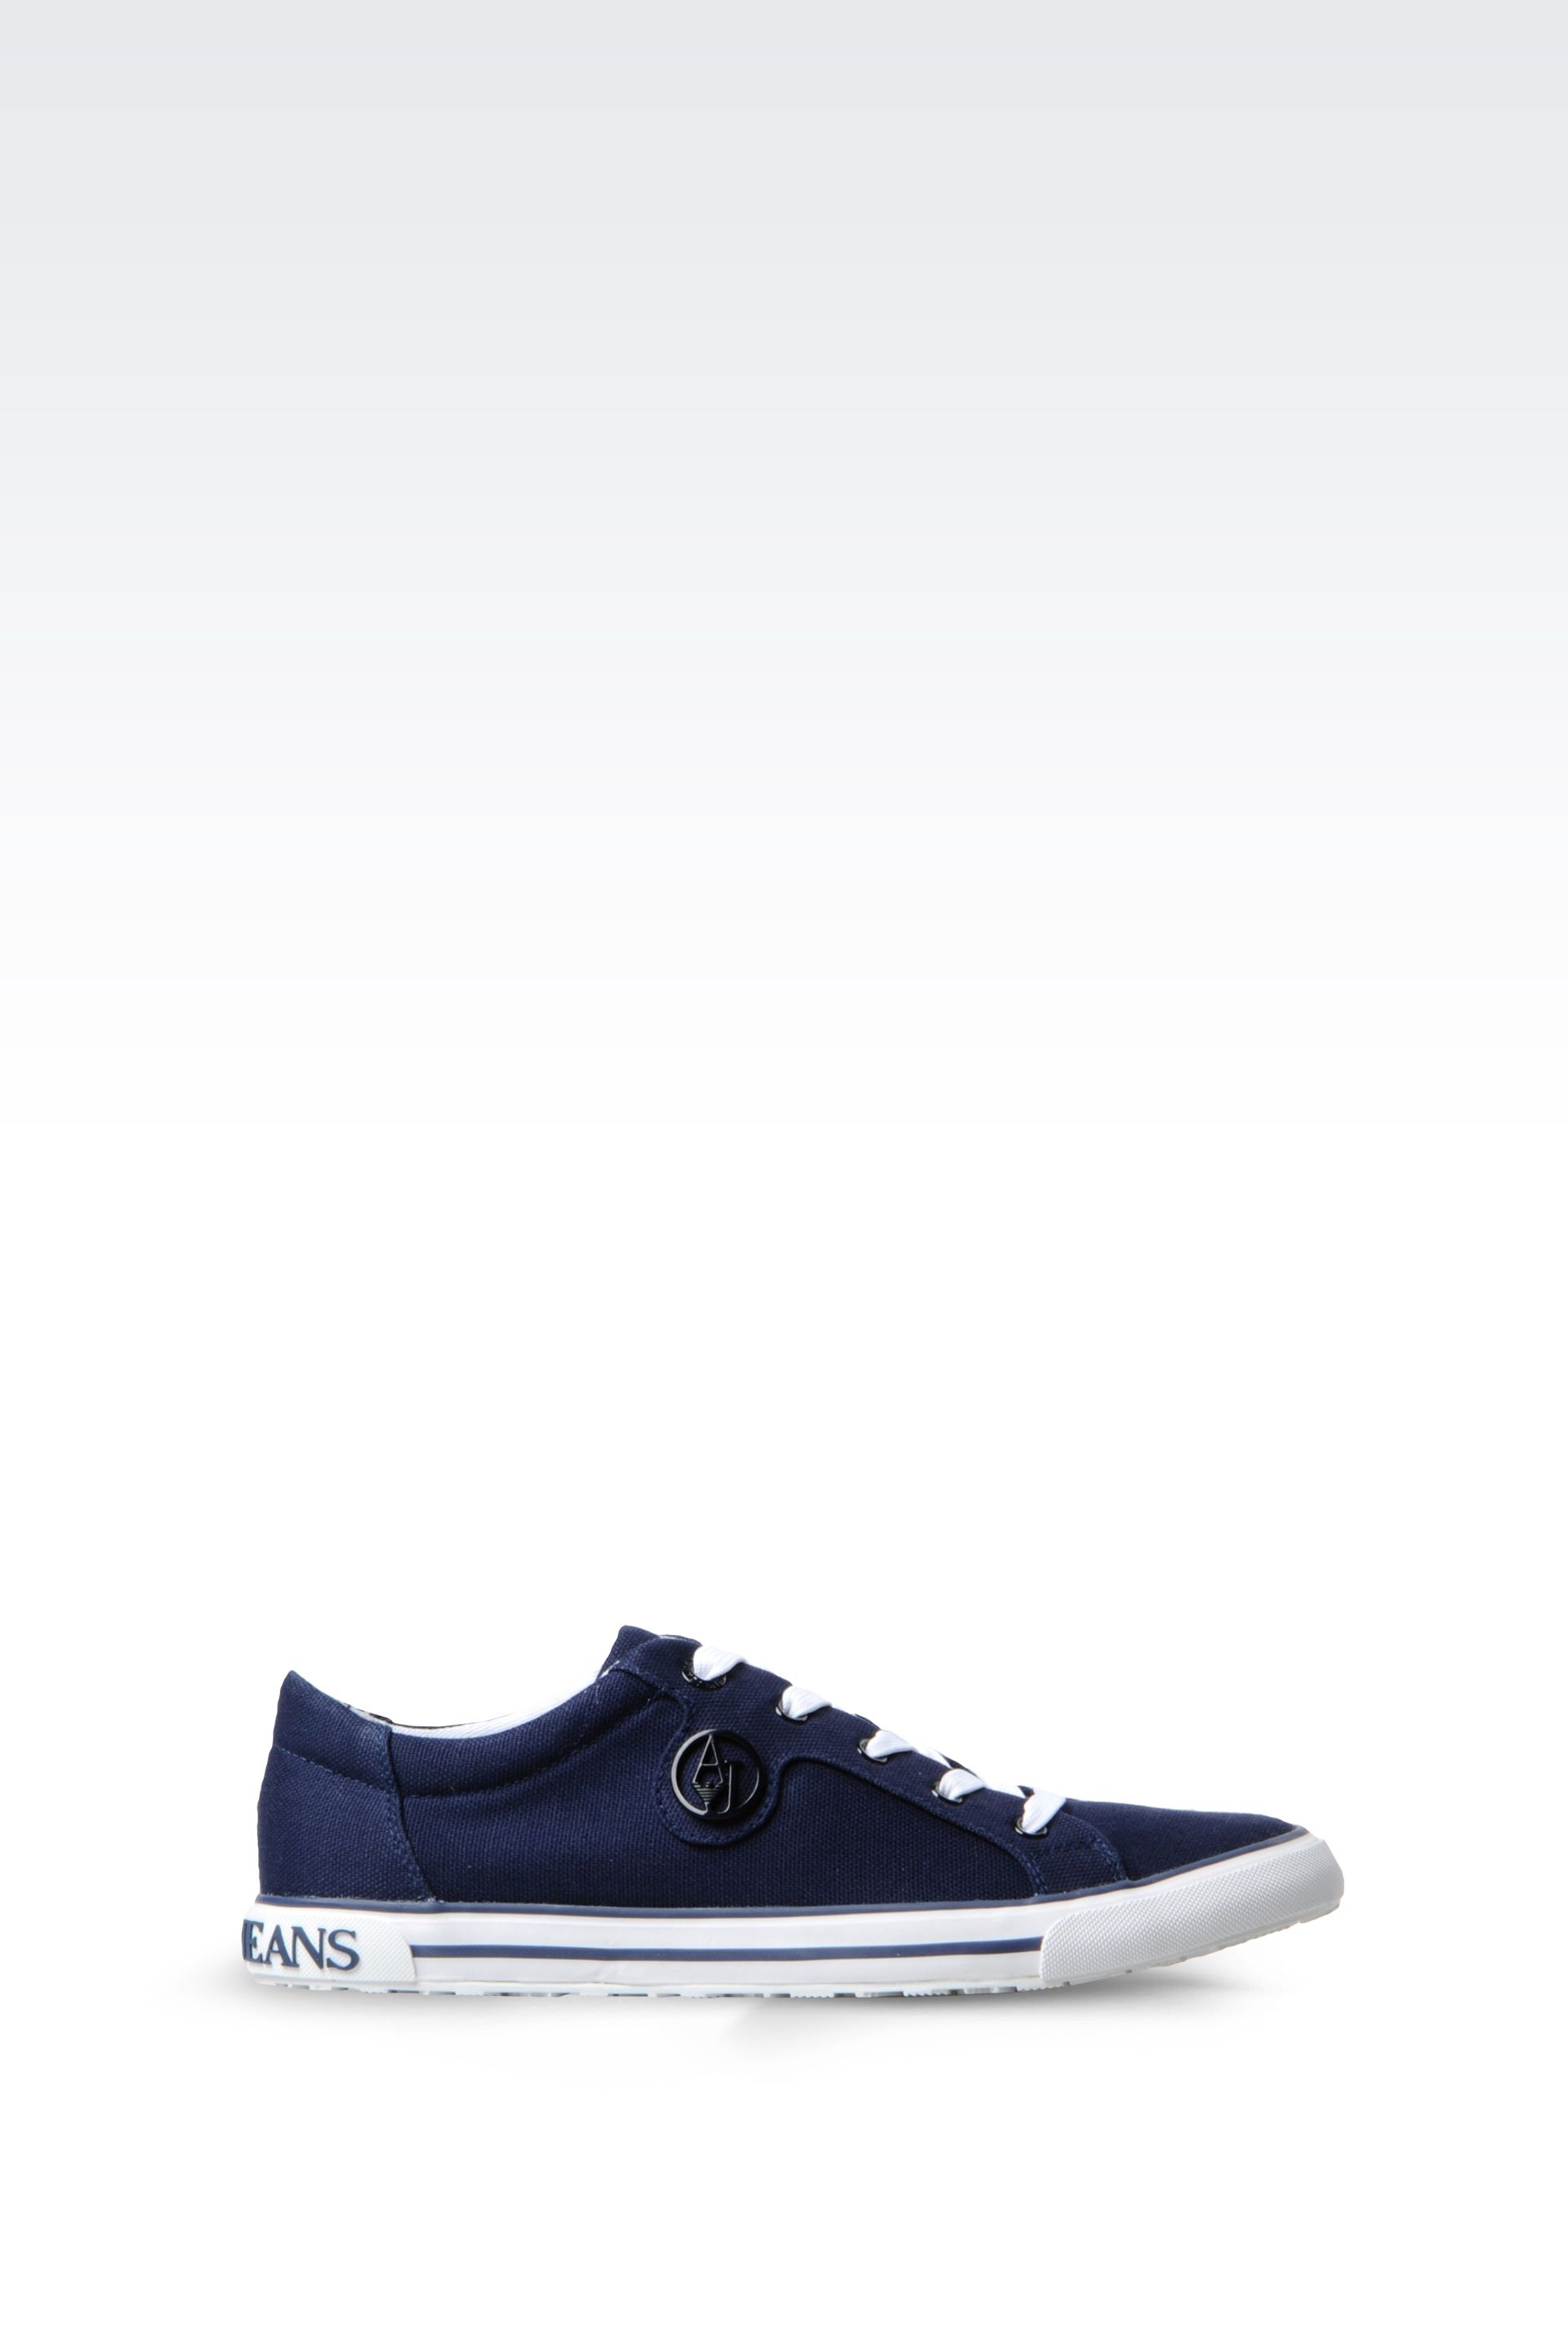 armani jeans canvas sneaker in blue dark blue save 53. Black Bedroom Furniture Sets. Home Design Ideas